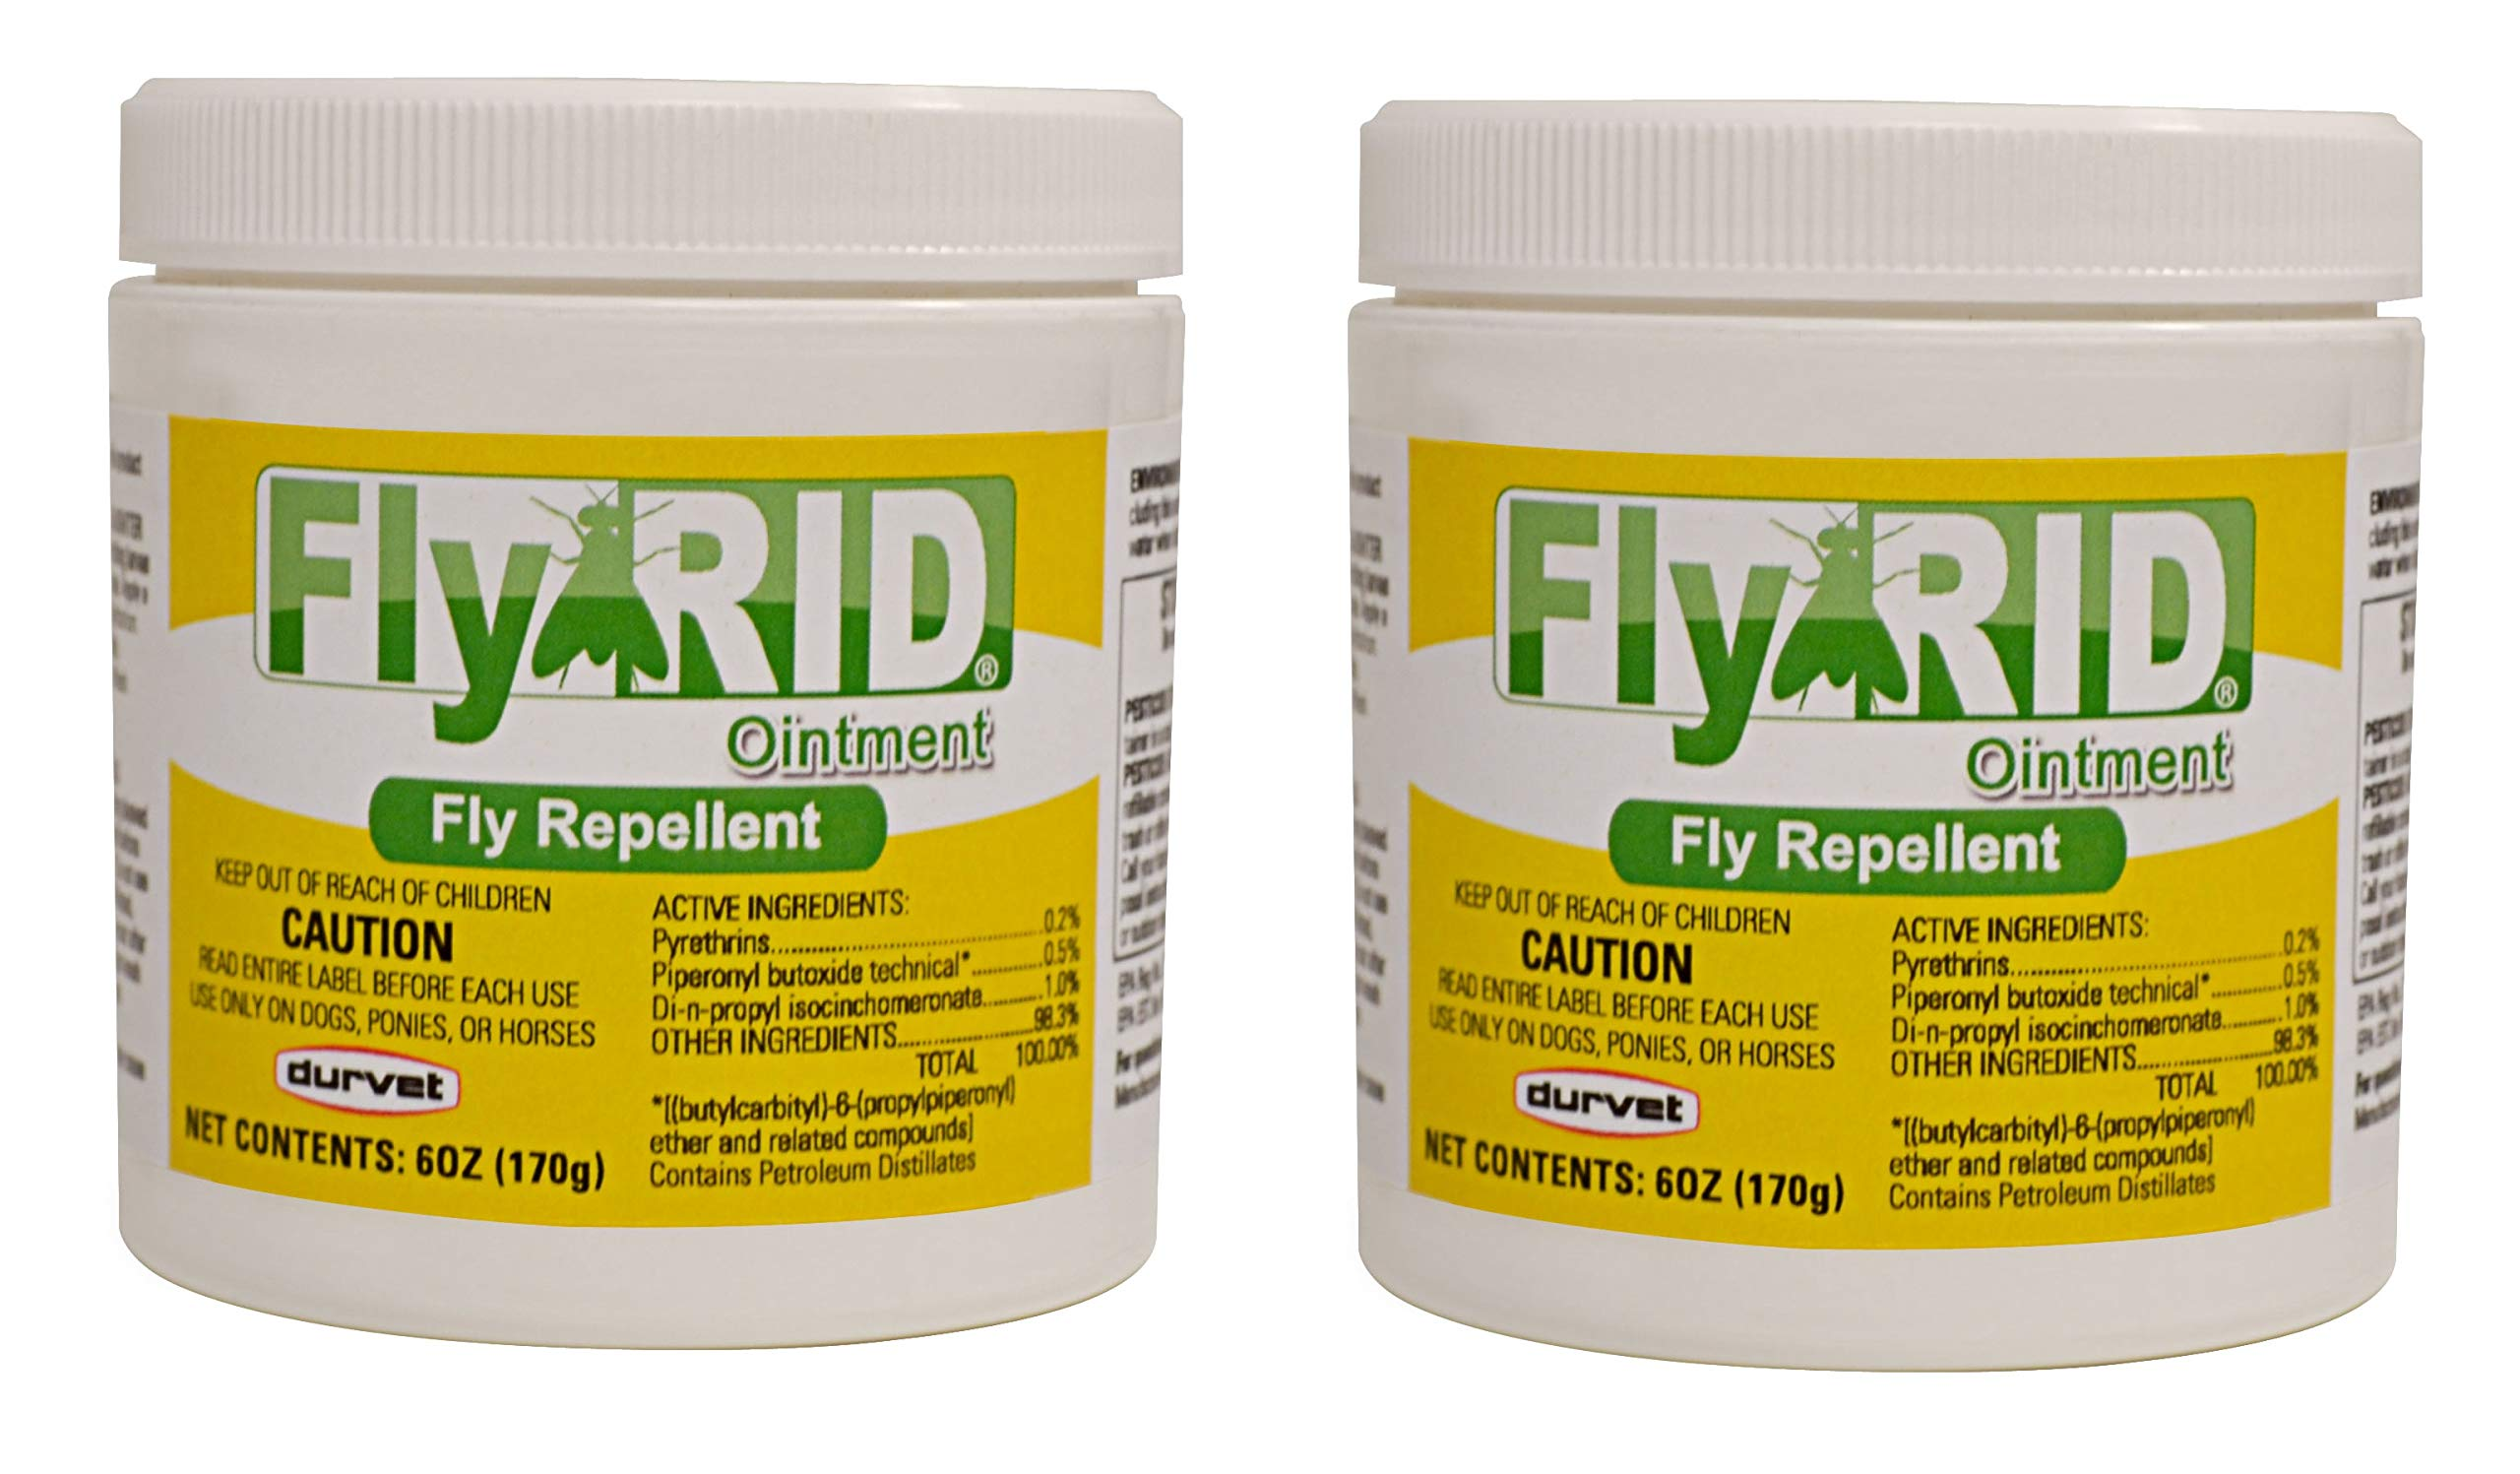 Durvet Fly Repellent Ointment Fly Rid Clear 6oz for Dogs and Horses (2 Packs)